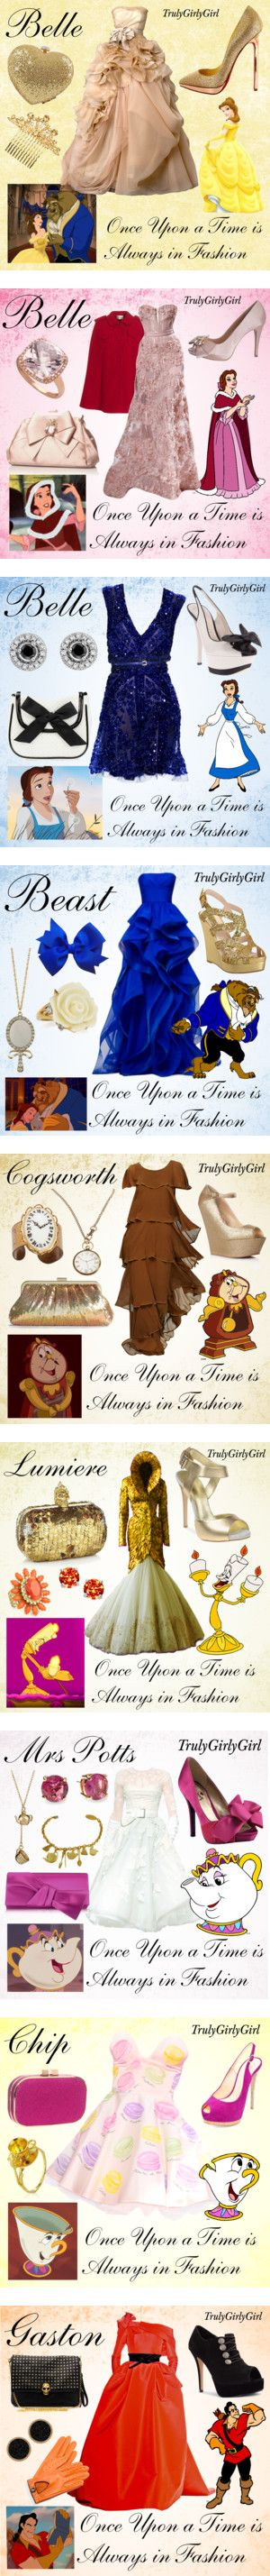 """Disney Style: Beauty and the Beast"" by trulygirlygirl ❤ liked on Polyvore"